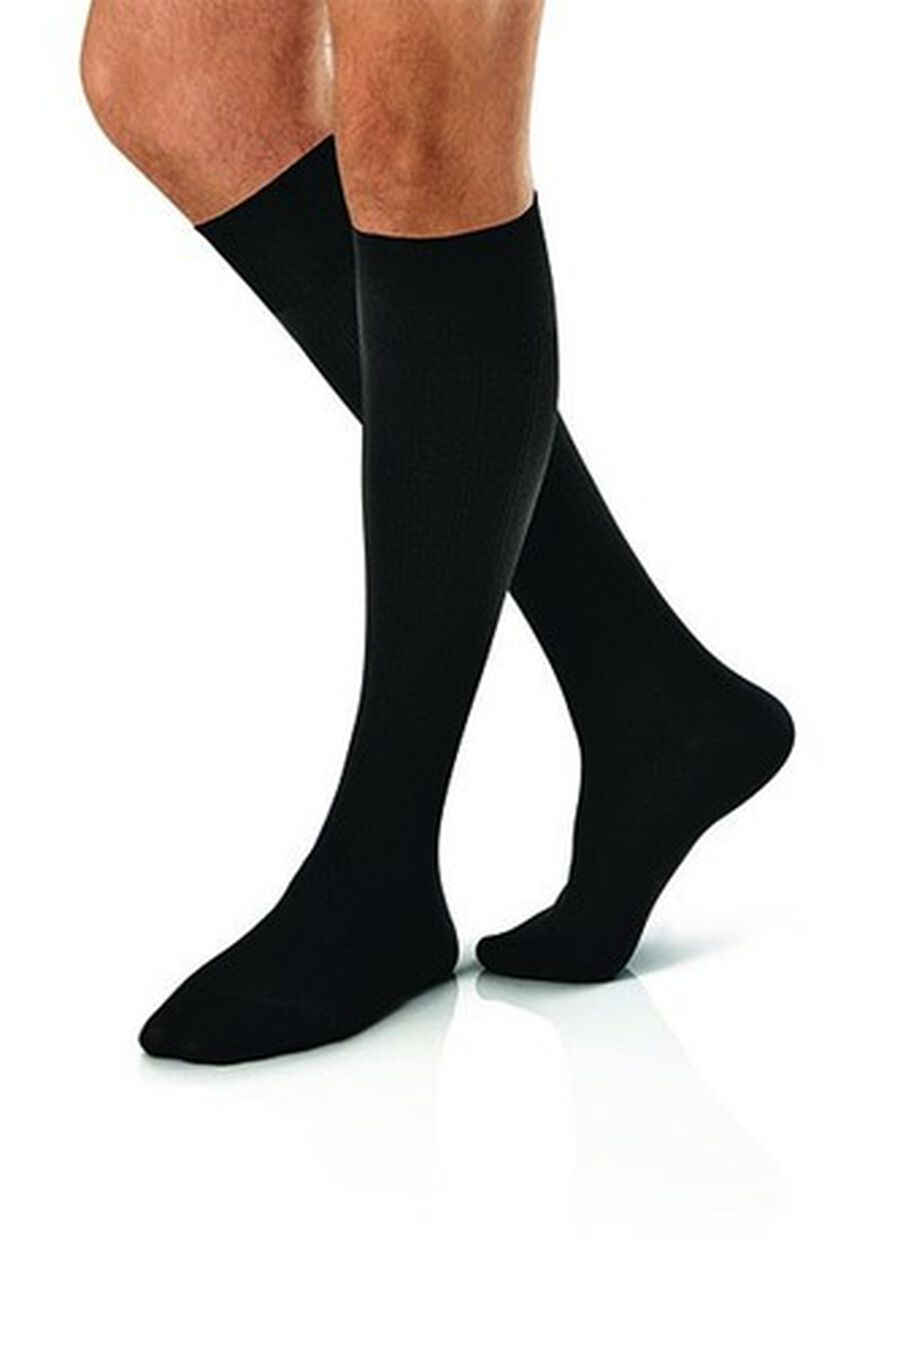 BSN Jobst Men's Knee-High Ribbed Extra Firm Compression Socks, Closed Toe, Large, Black, , large image number 2